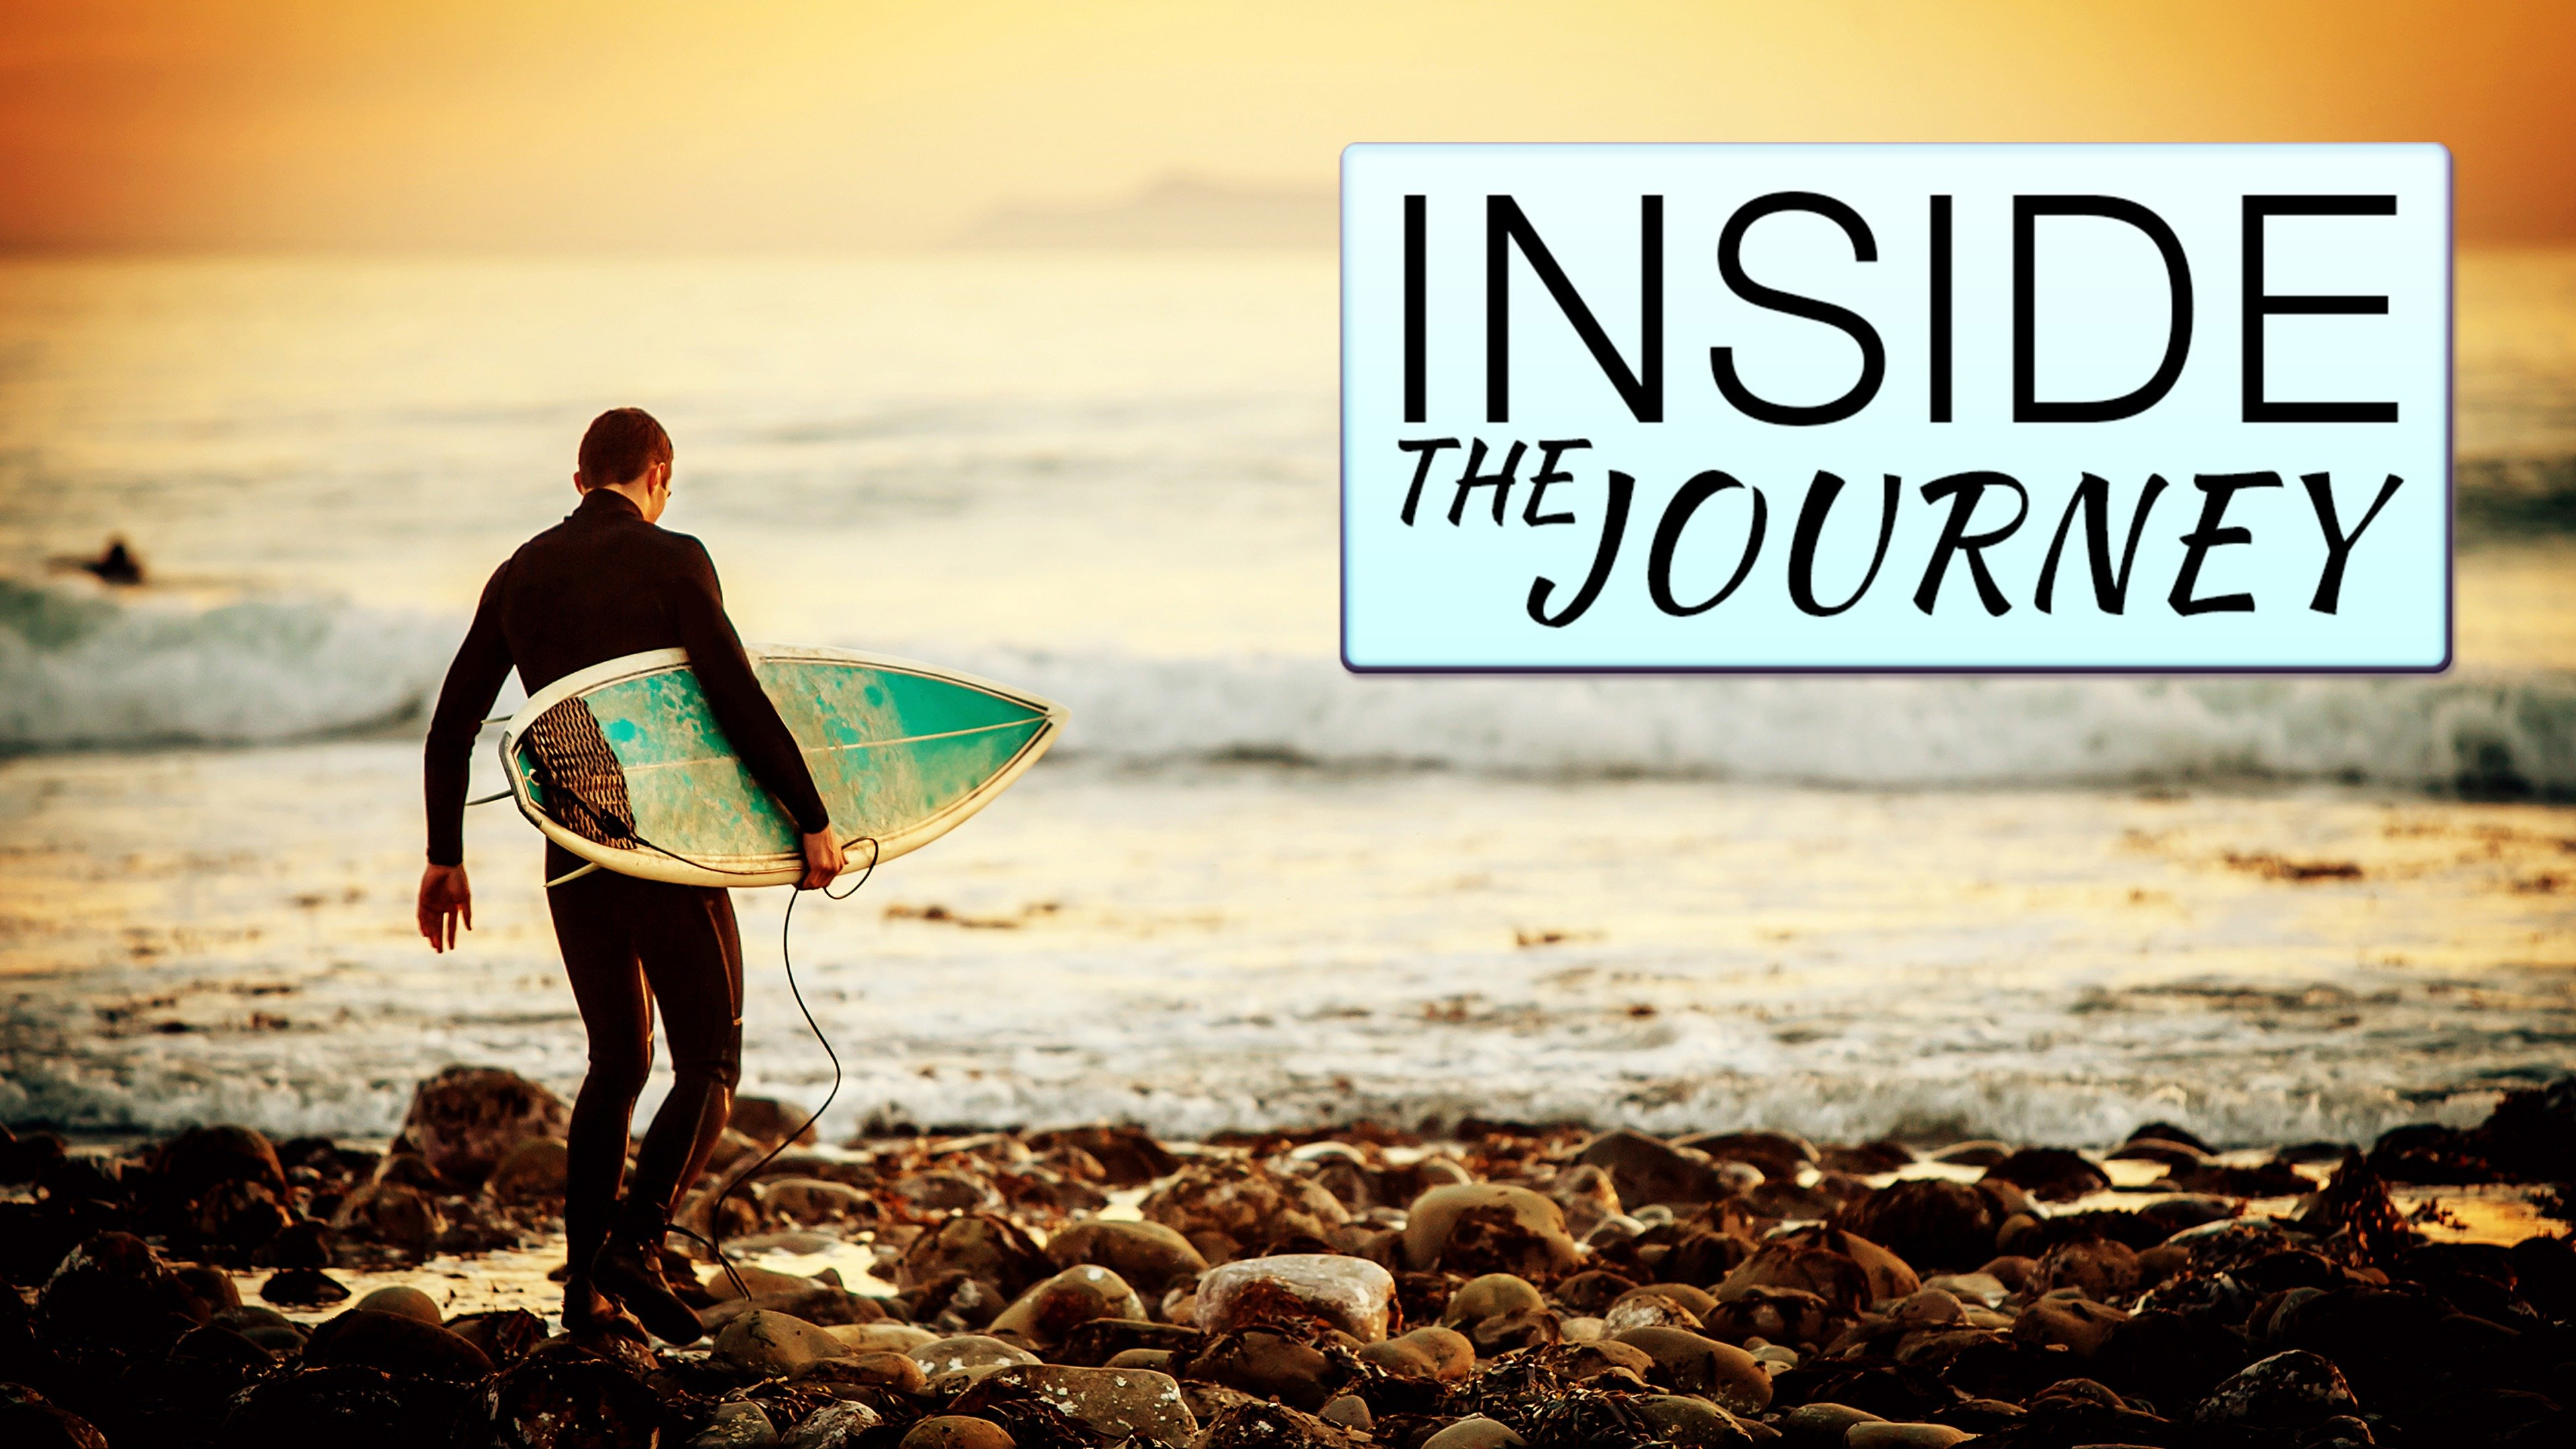 INSIDE: The Journey